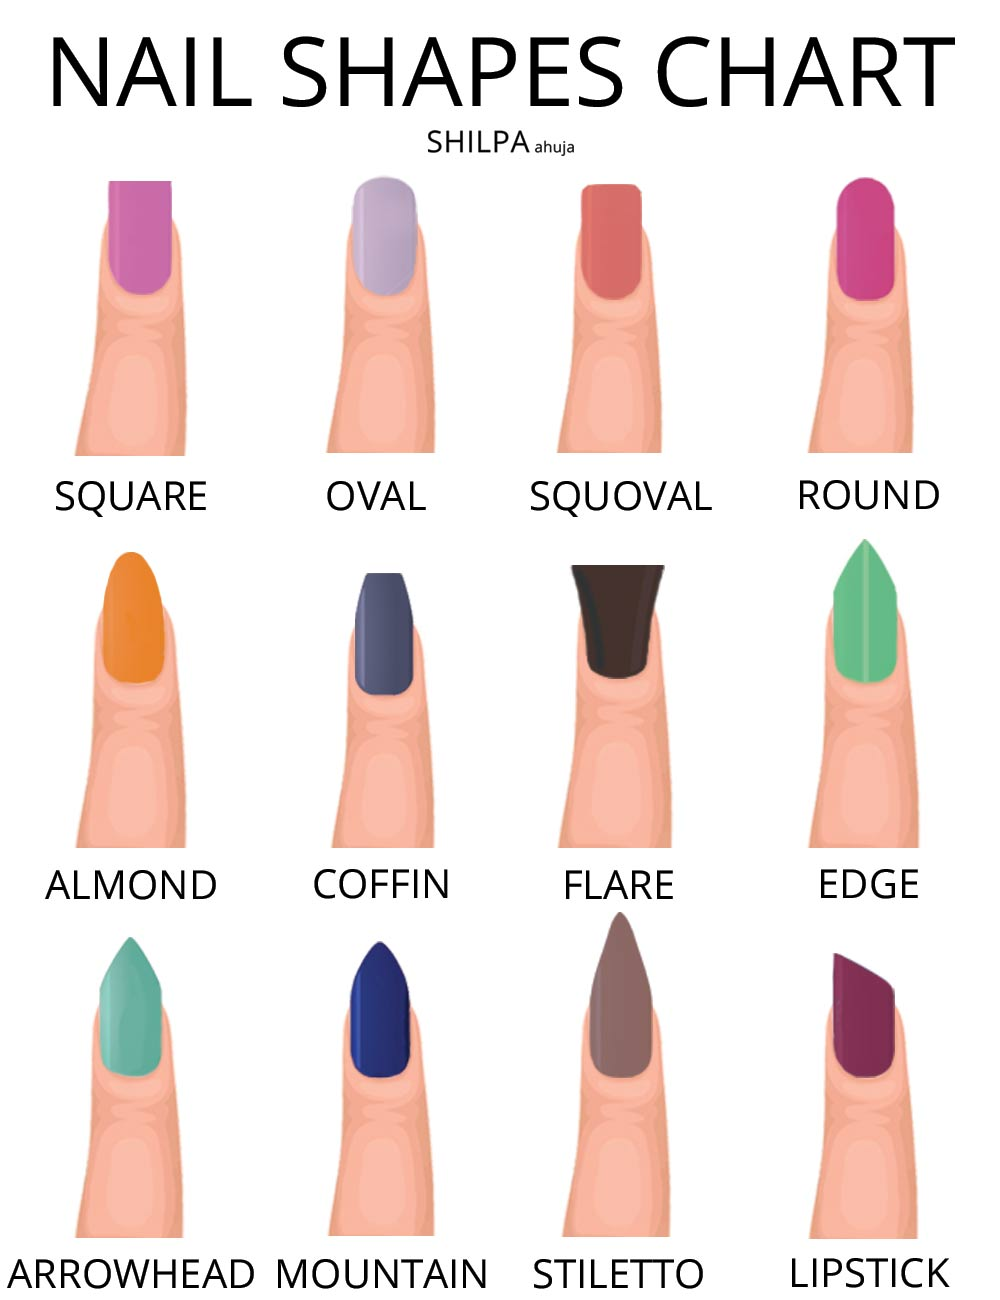 Nail Shape Chart | Find Out About Different Nail Shapes and Designs